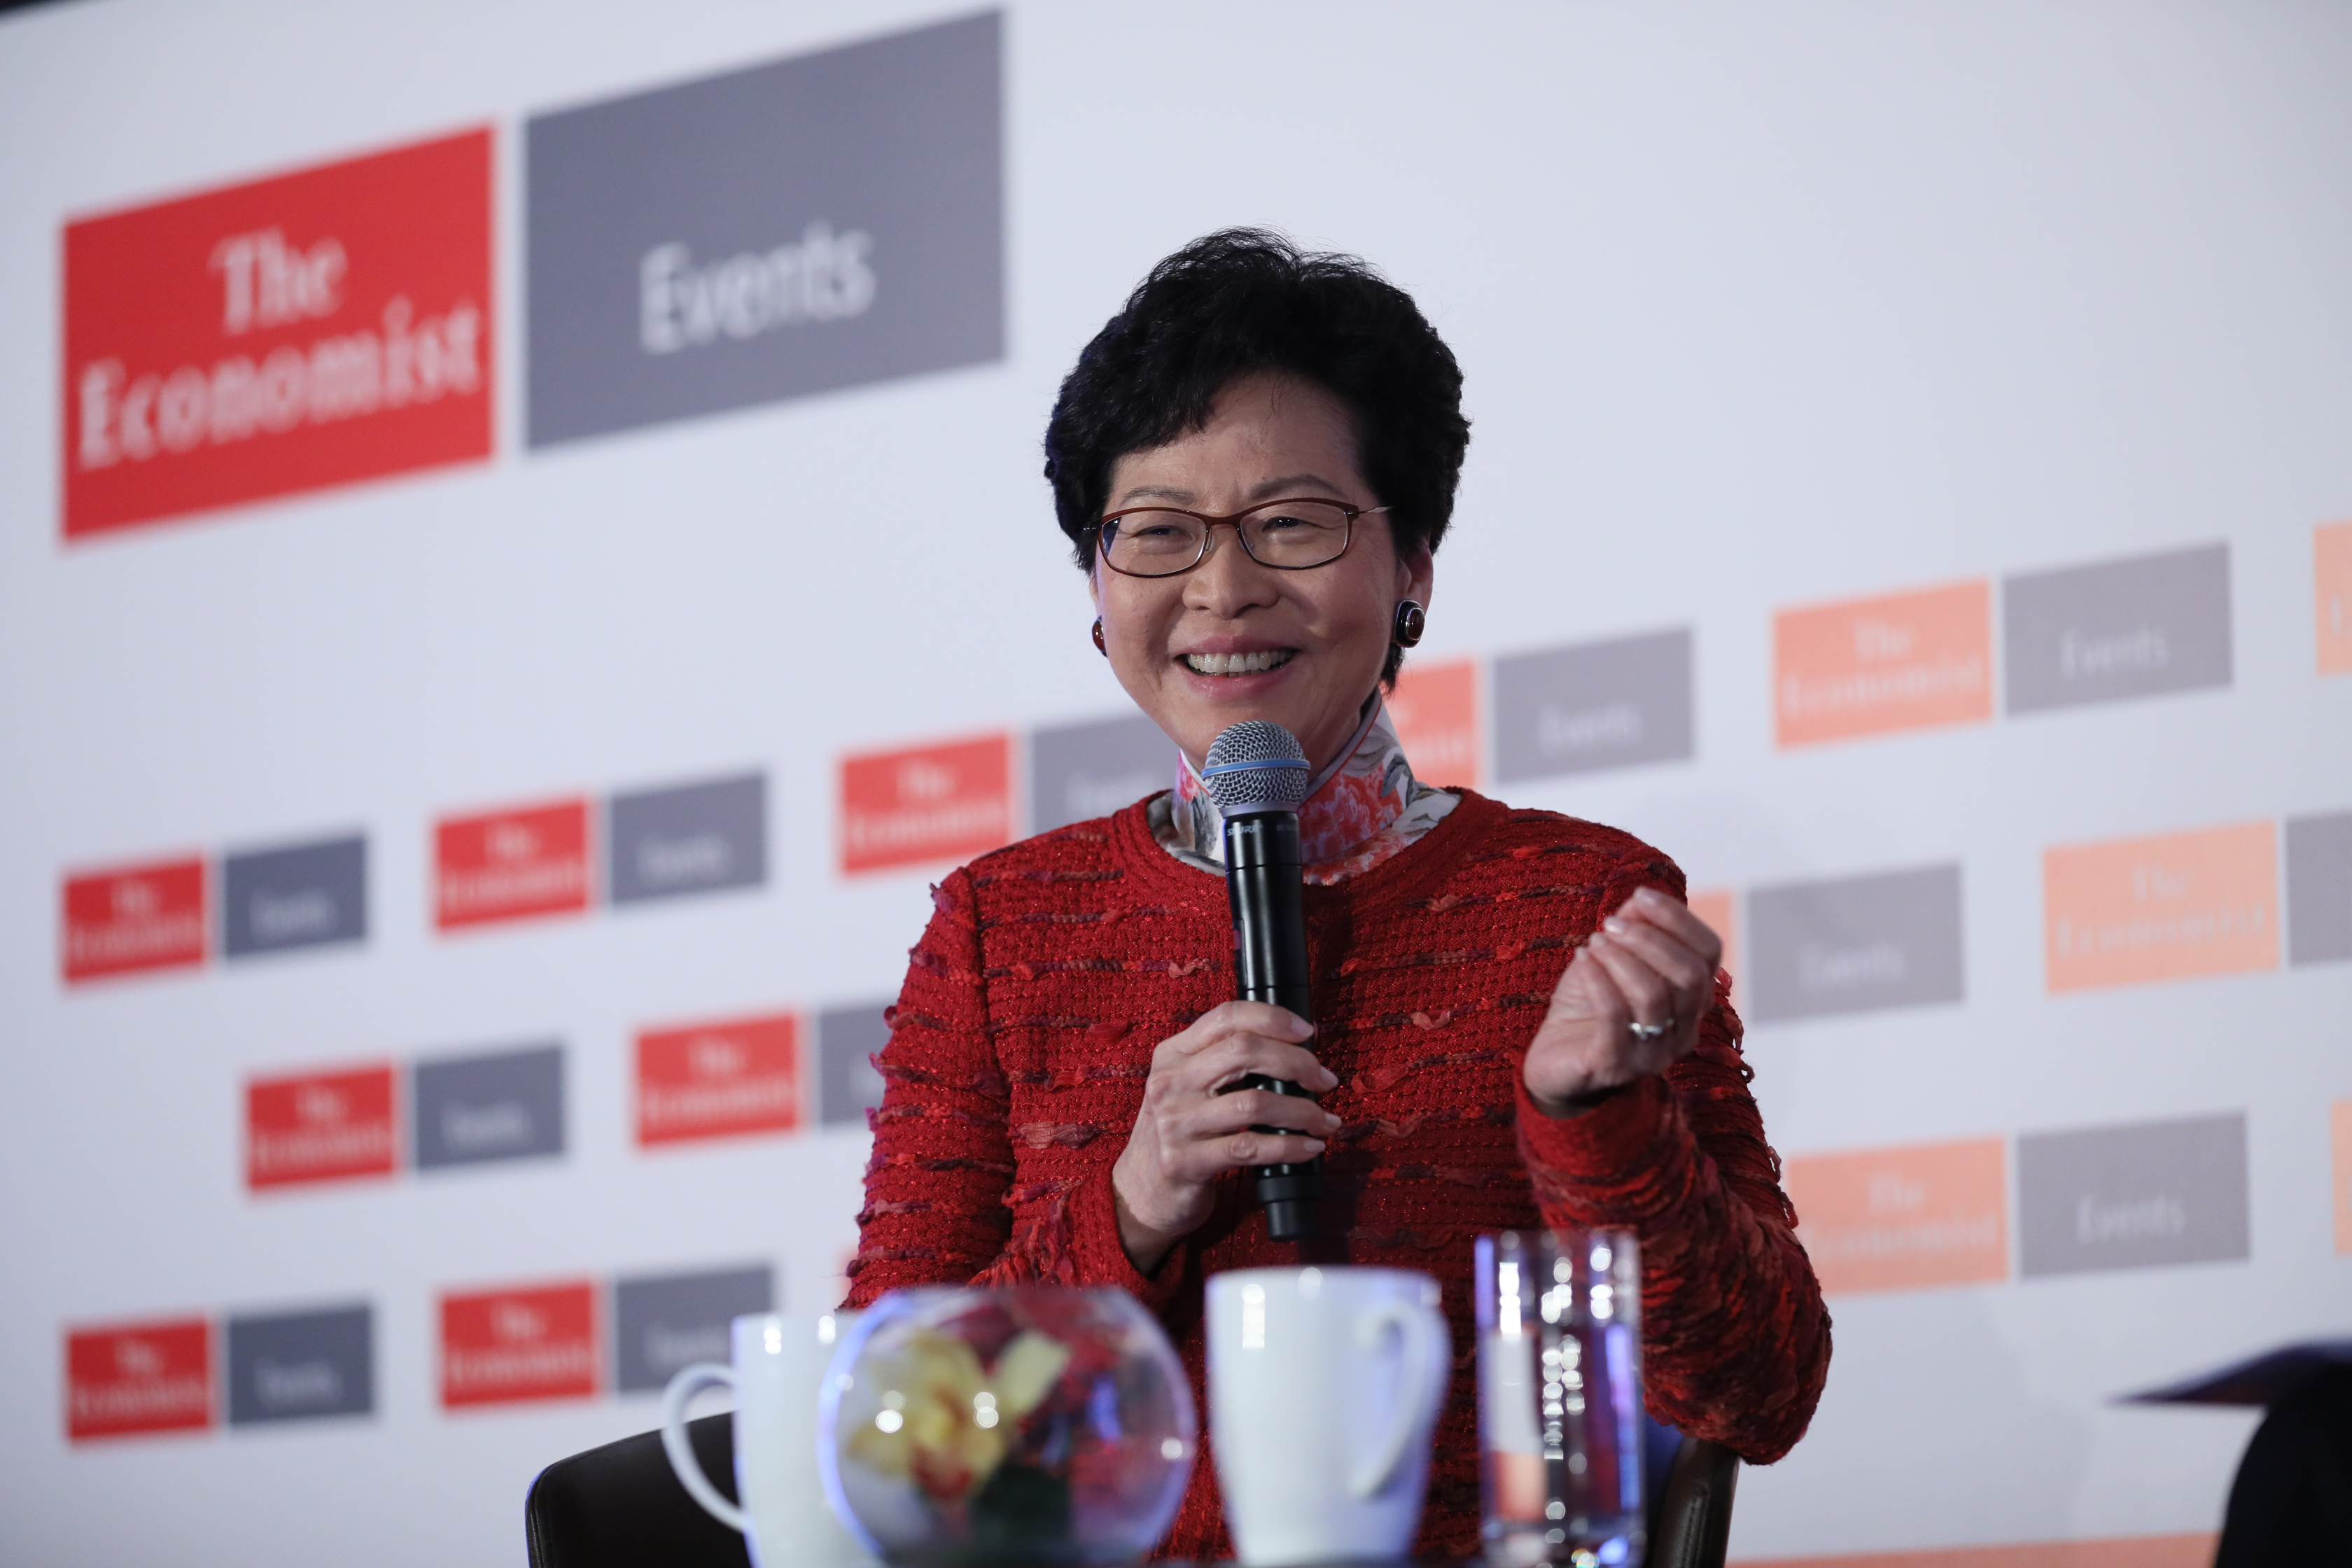 Carrie Lam, chief executive, Hong Kong Special Administrative Region